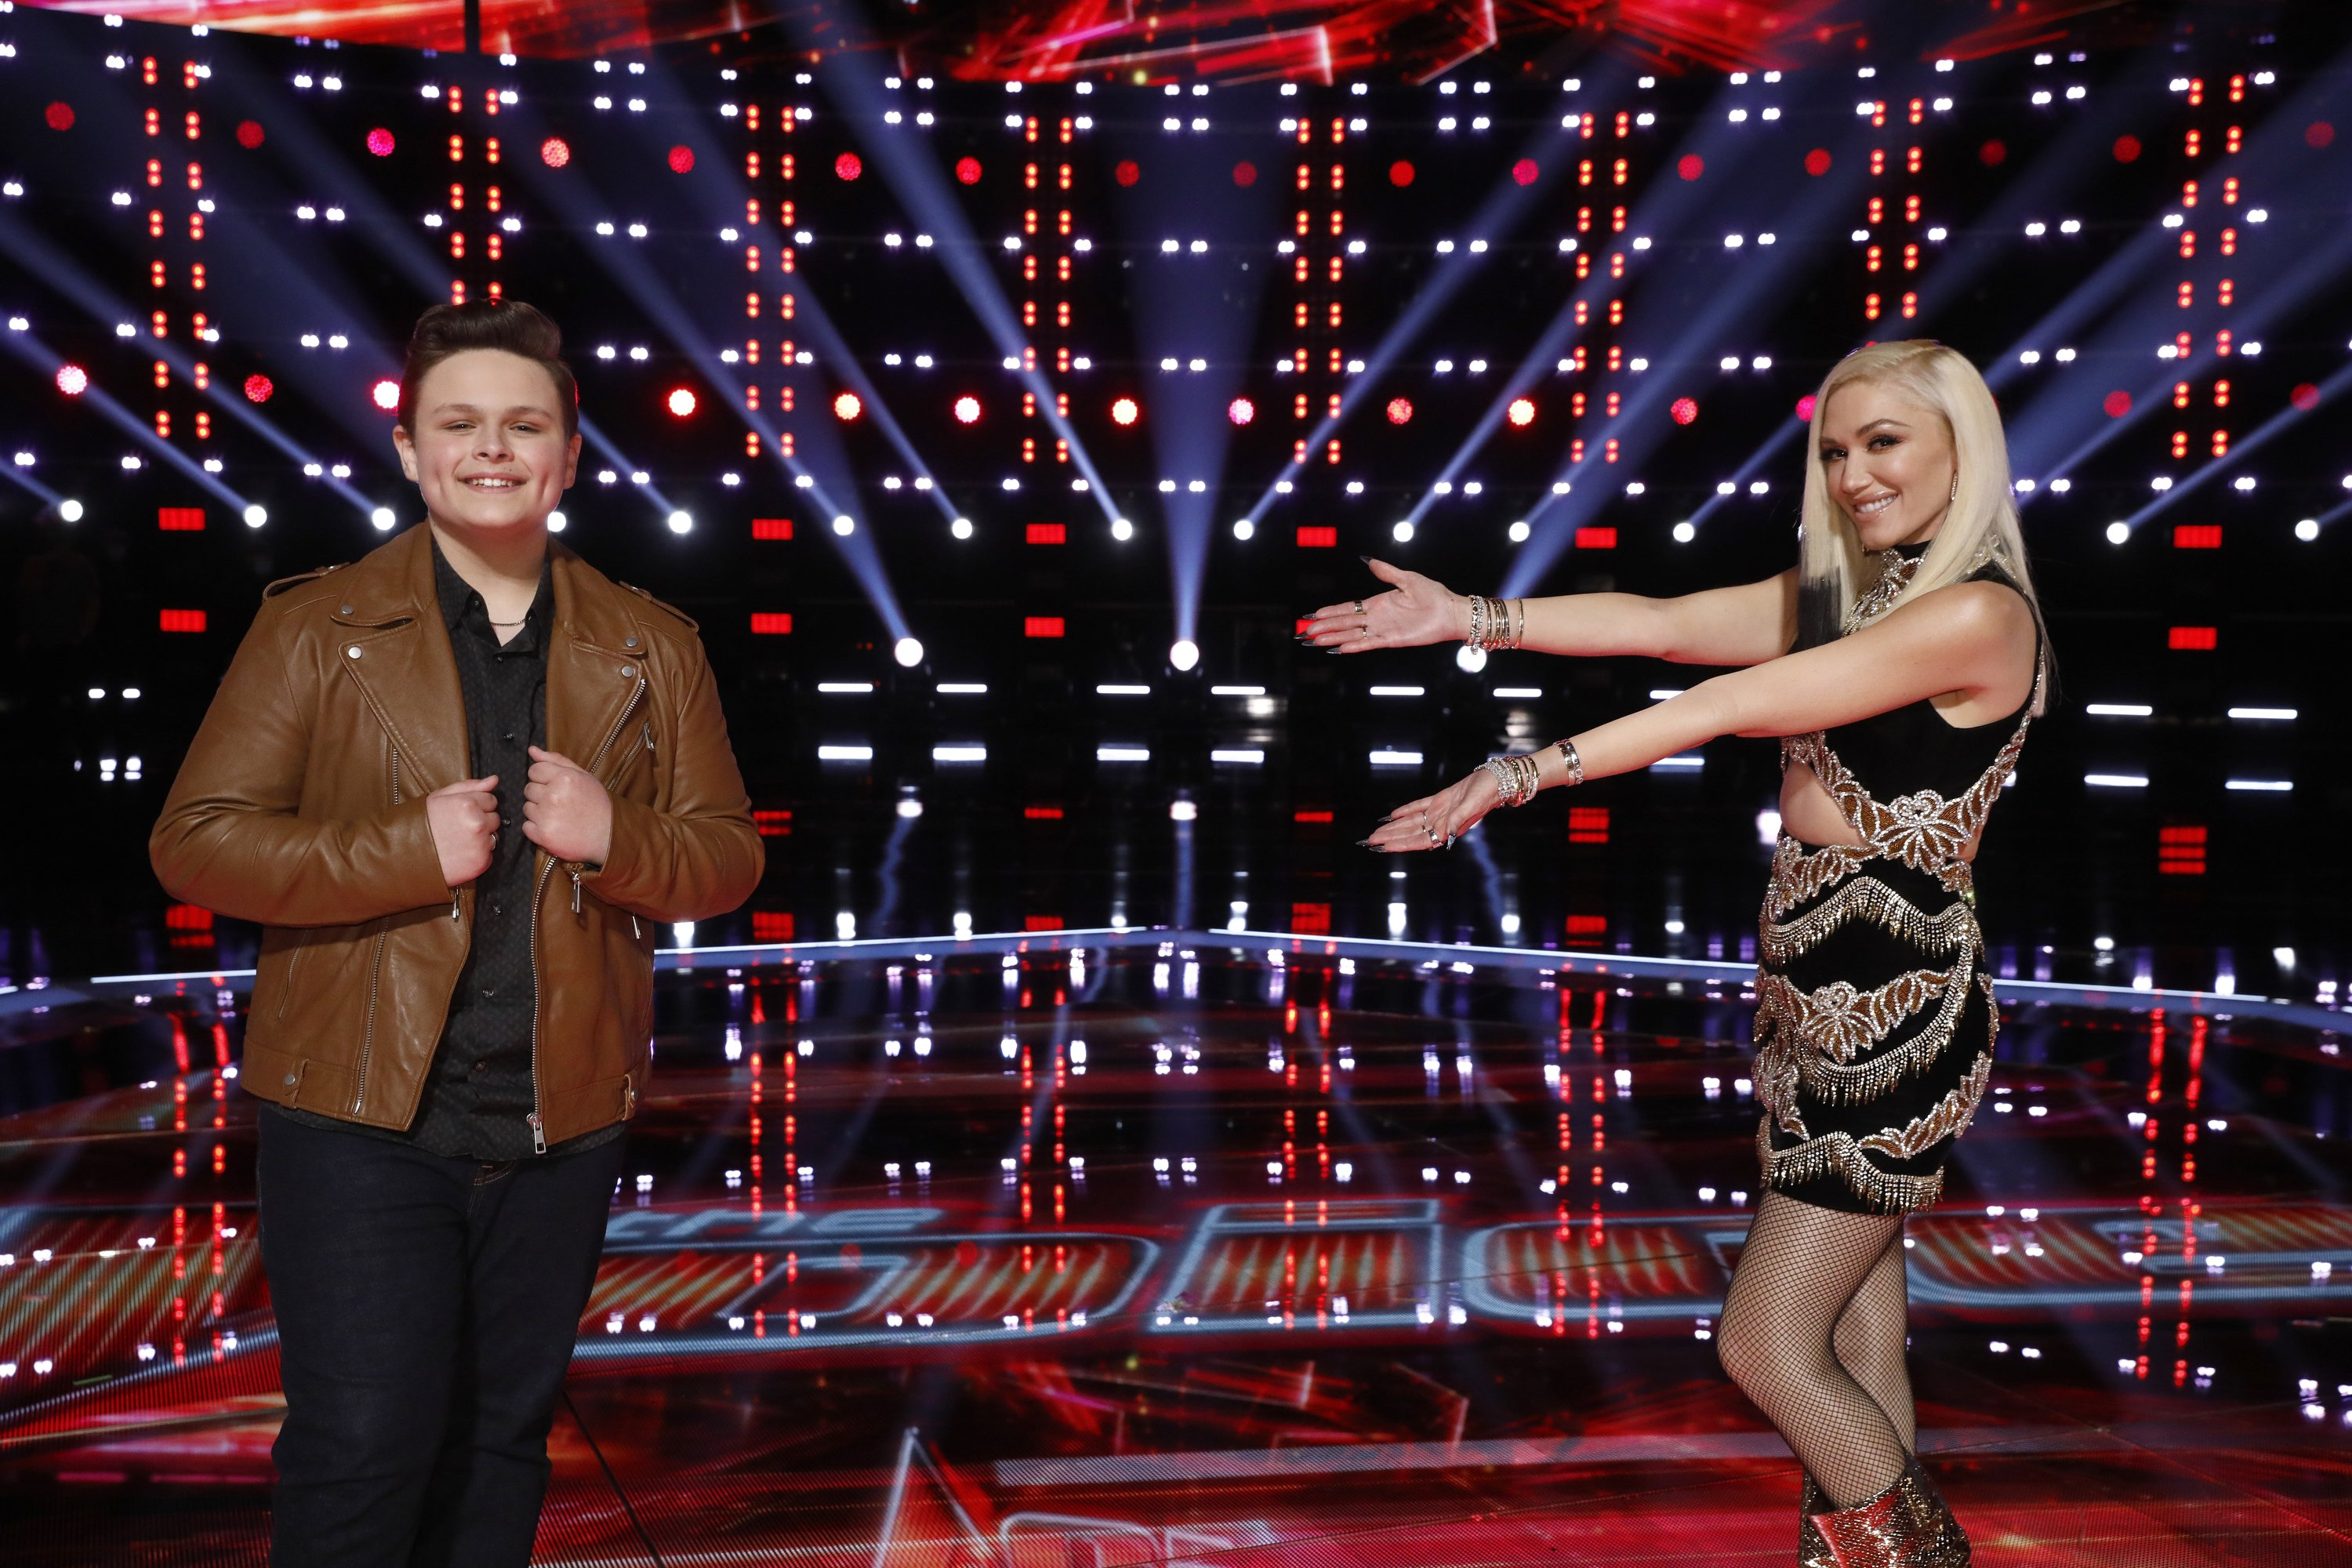 """Gwen Stefani and Rubin Carter during the Top 9 reveal of season 19 of """"The Voice.""""   Source: Getty Images."""